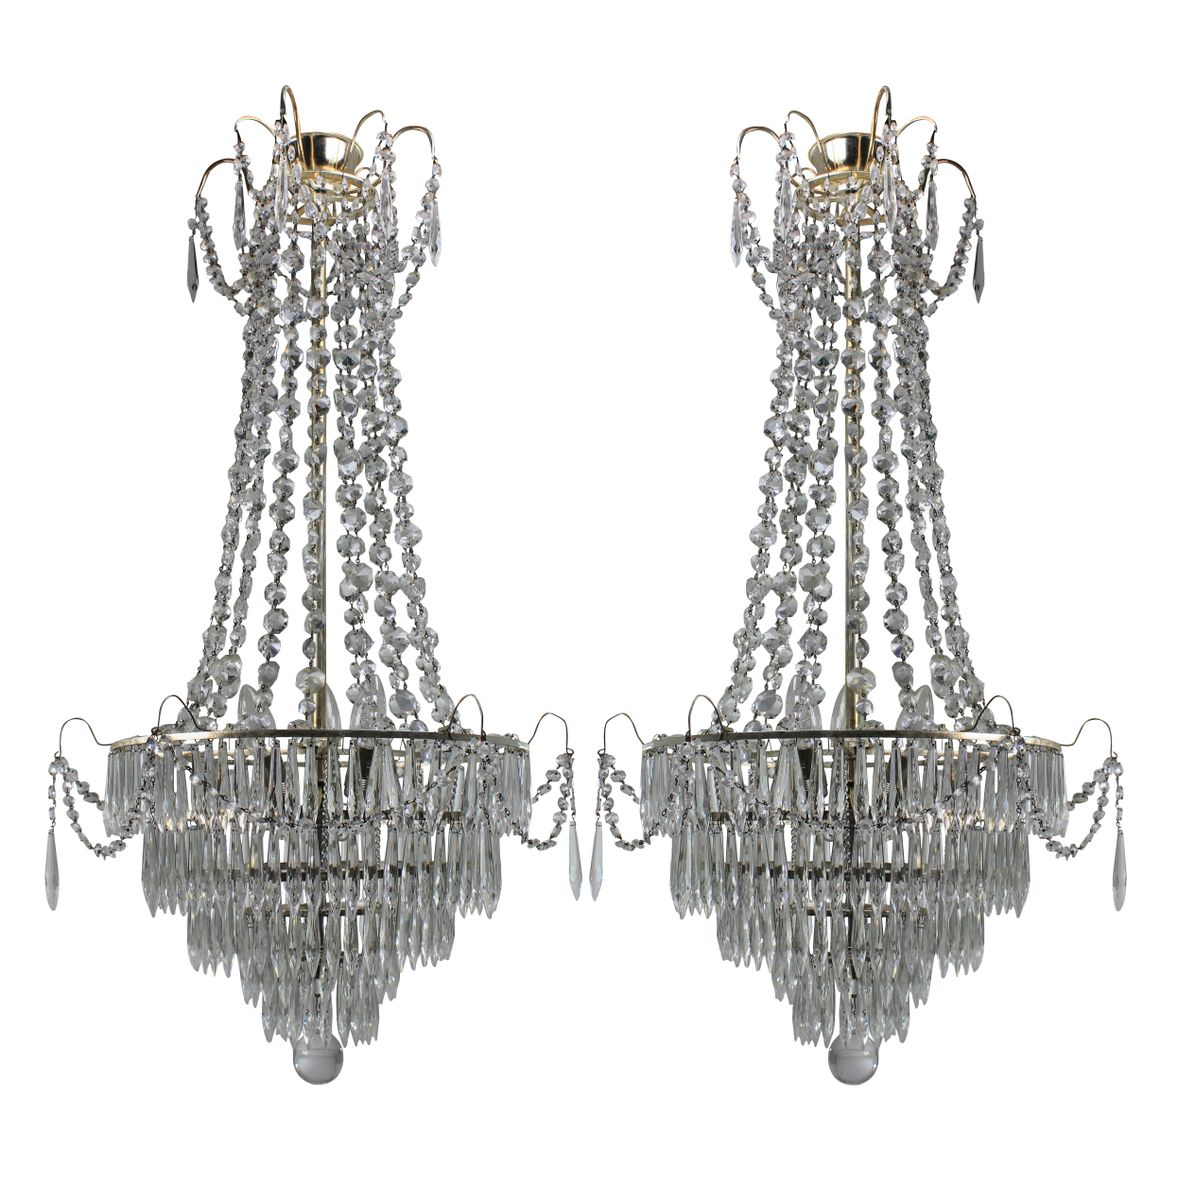 Swedish chandeliers 1930s set of 2 for sale at pamono swedish chandeliers 1930s set of 2 arubaitofo Gallery